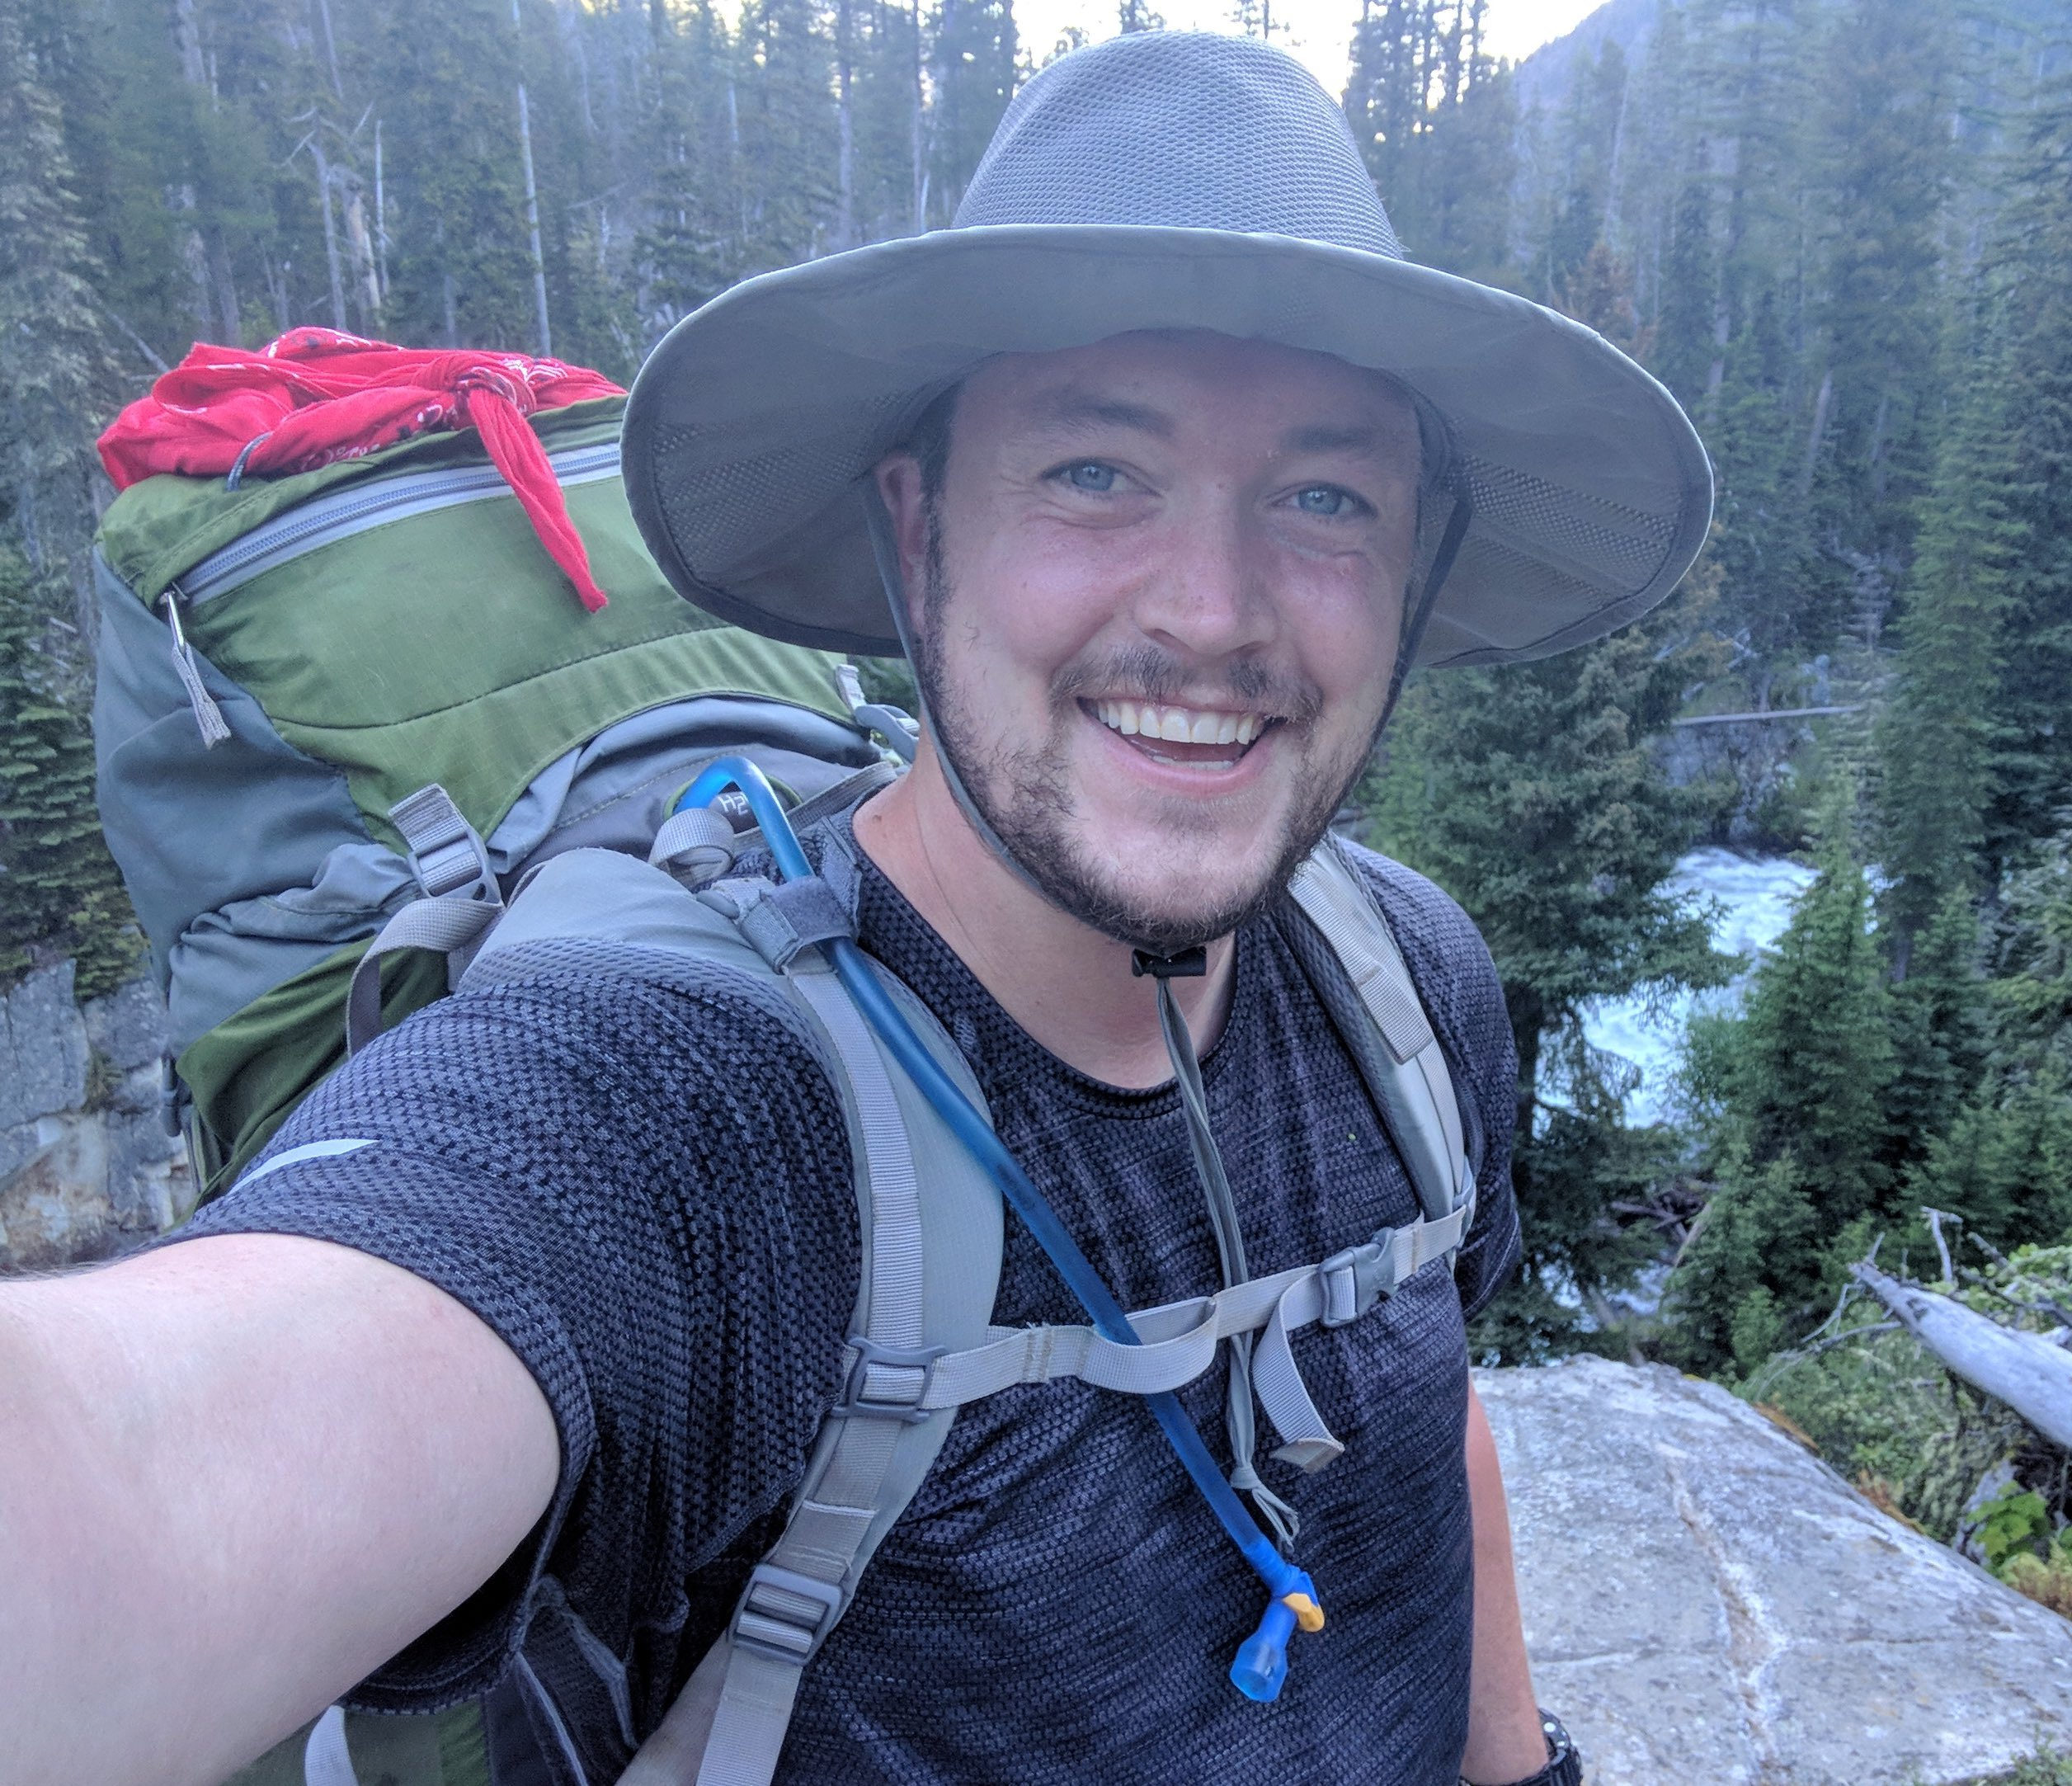 man in woods wearing hiking gear and hat